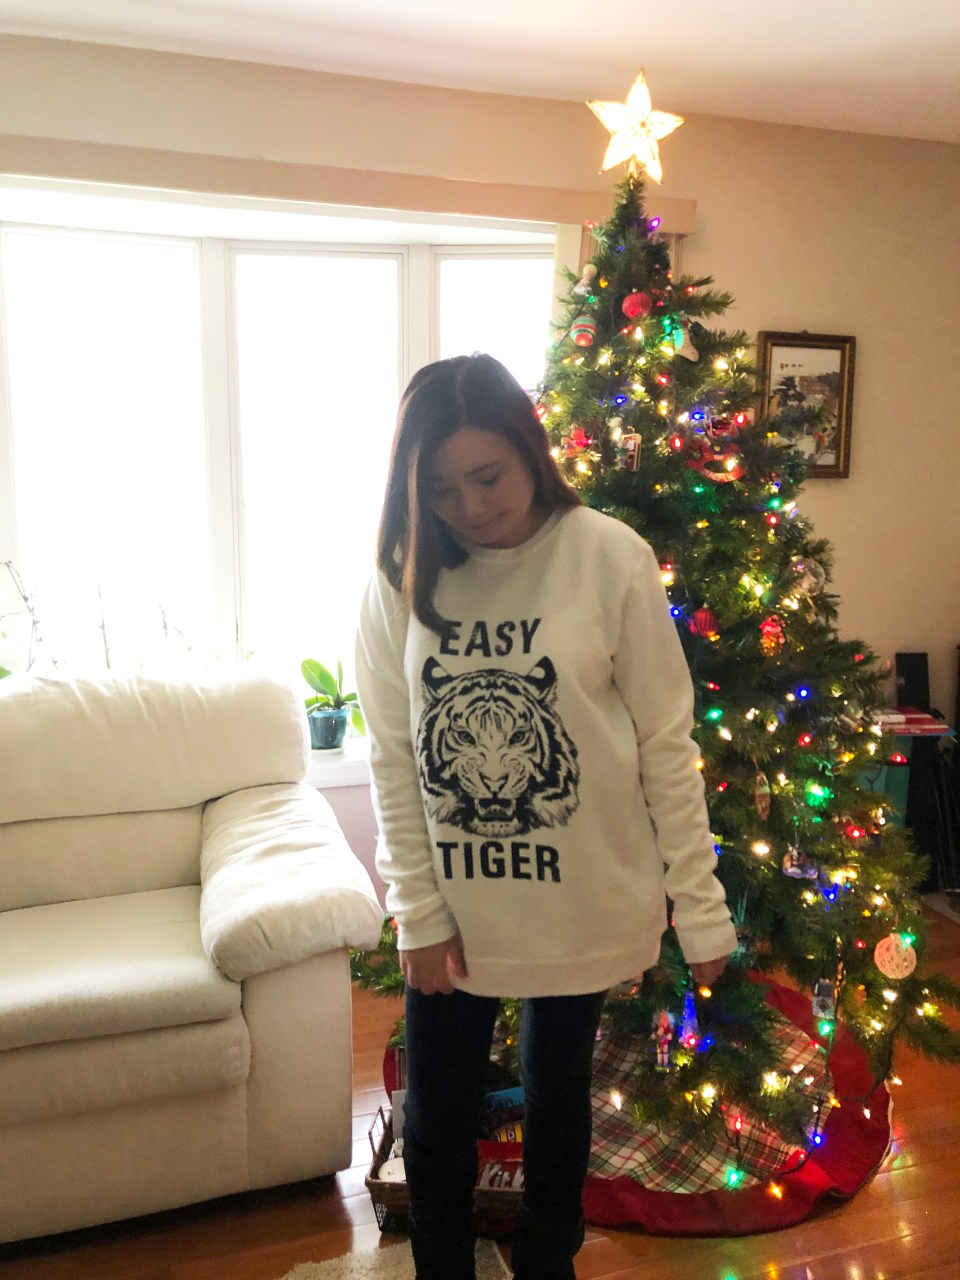 Easy Tiger Sweatshirt 1